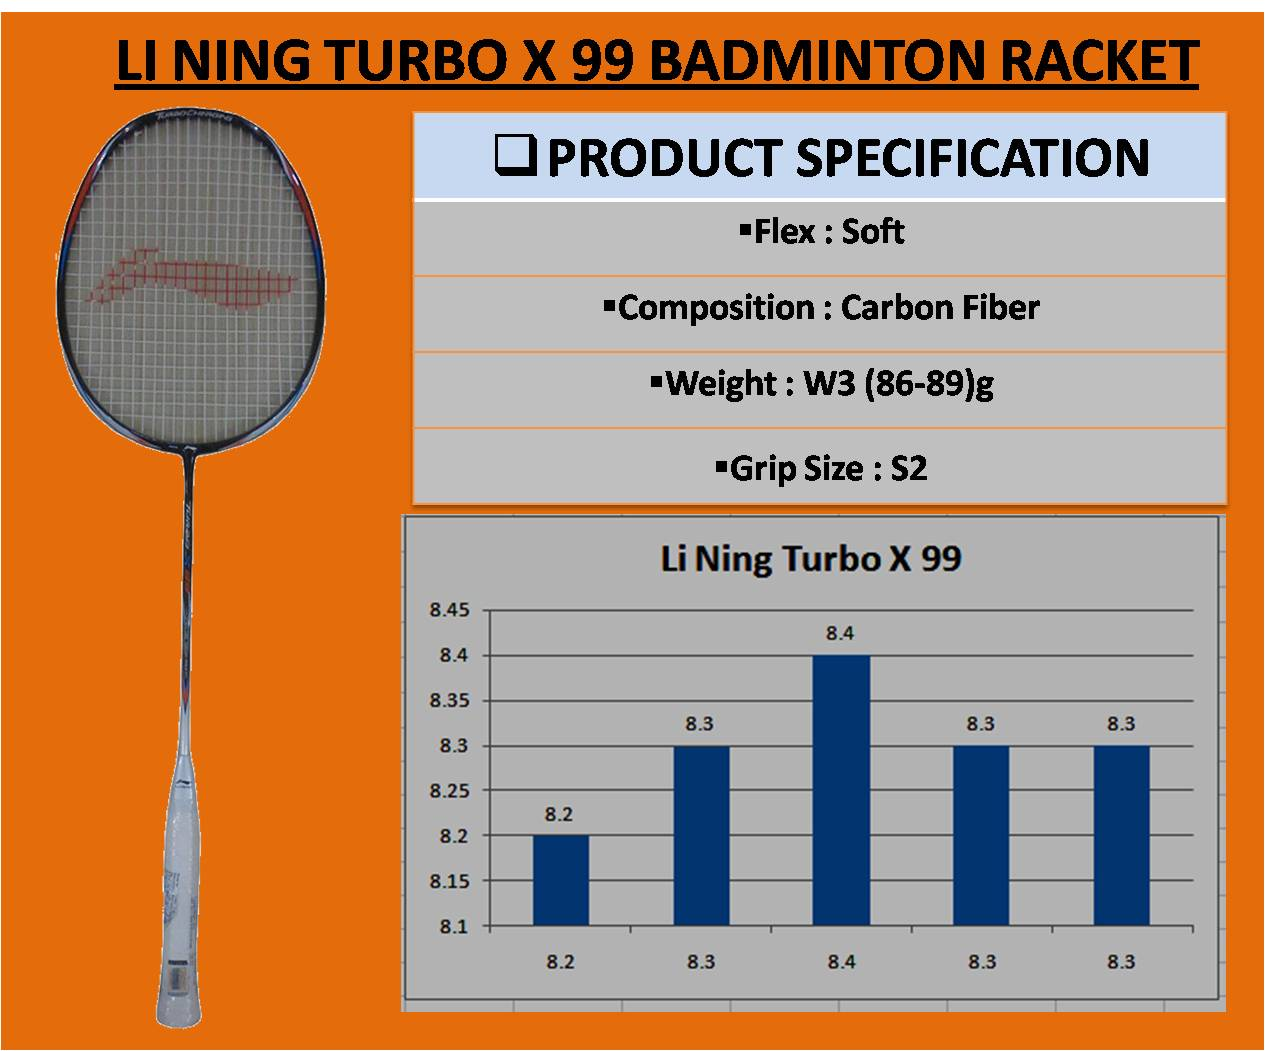 LI NING TURBO X 99 BADMINTON RACKET